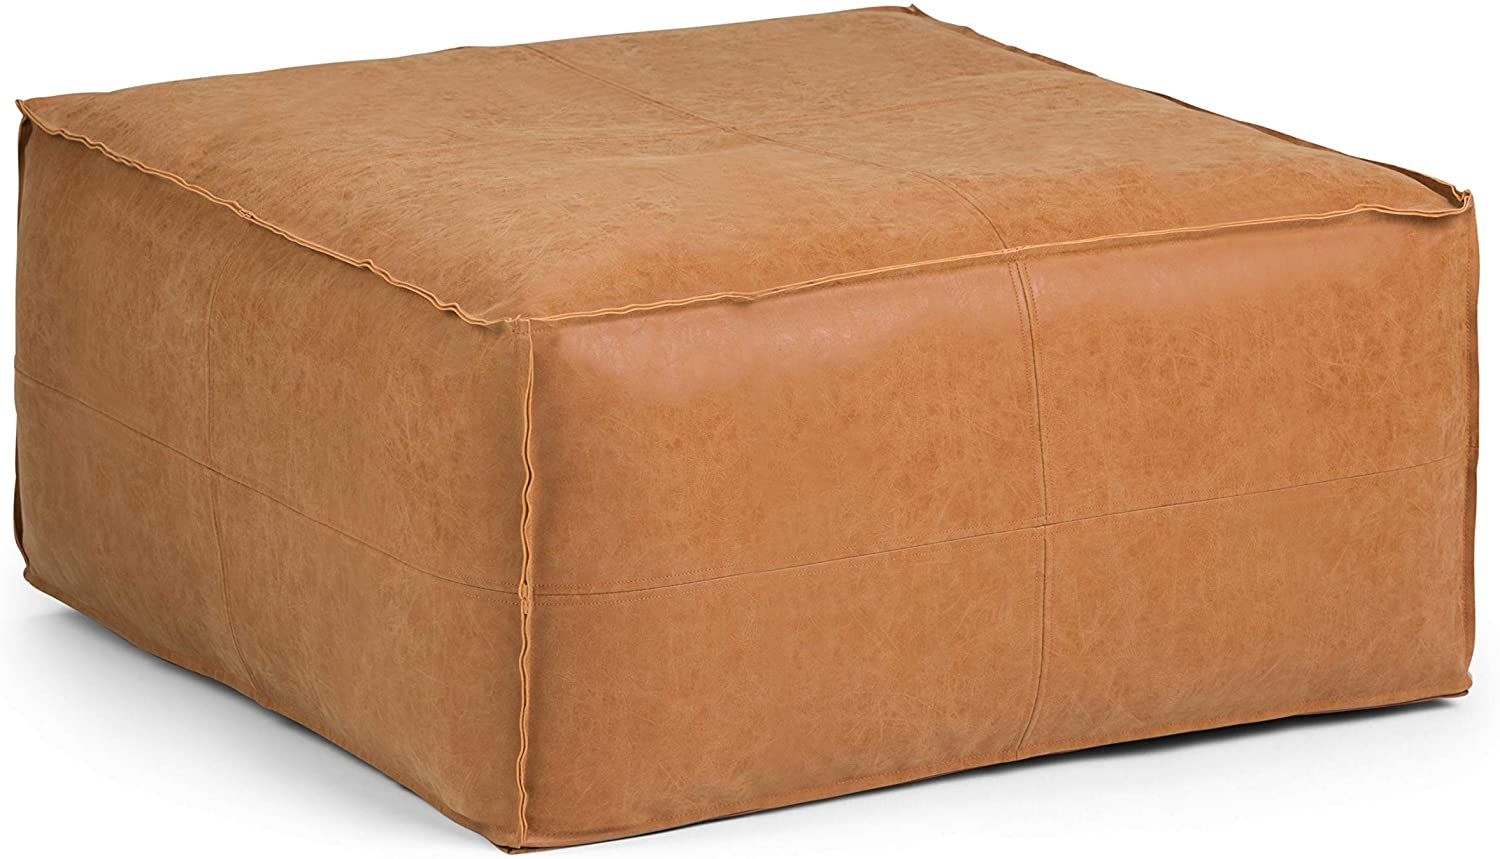 SIMPLIHOME Brody Large 67% OFF Super intense SALE of fixed price Square Coffee Table Distr 30 inch Poufs